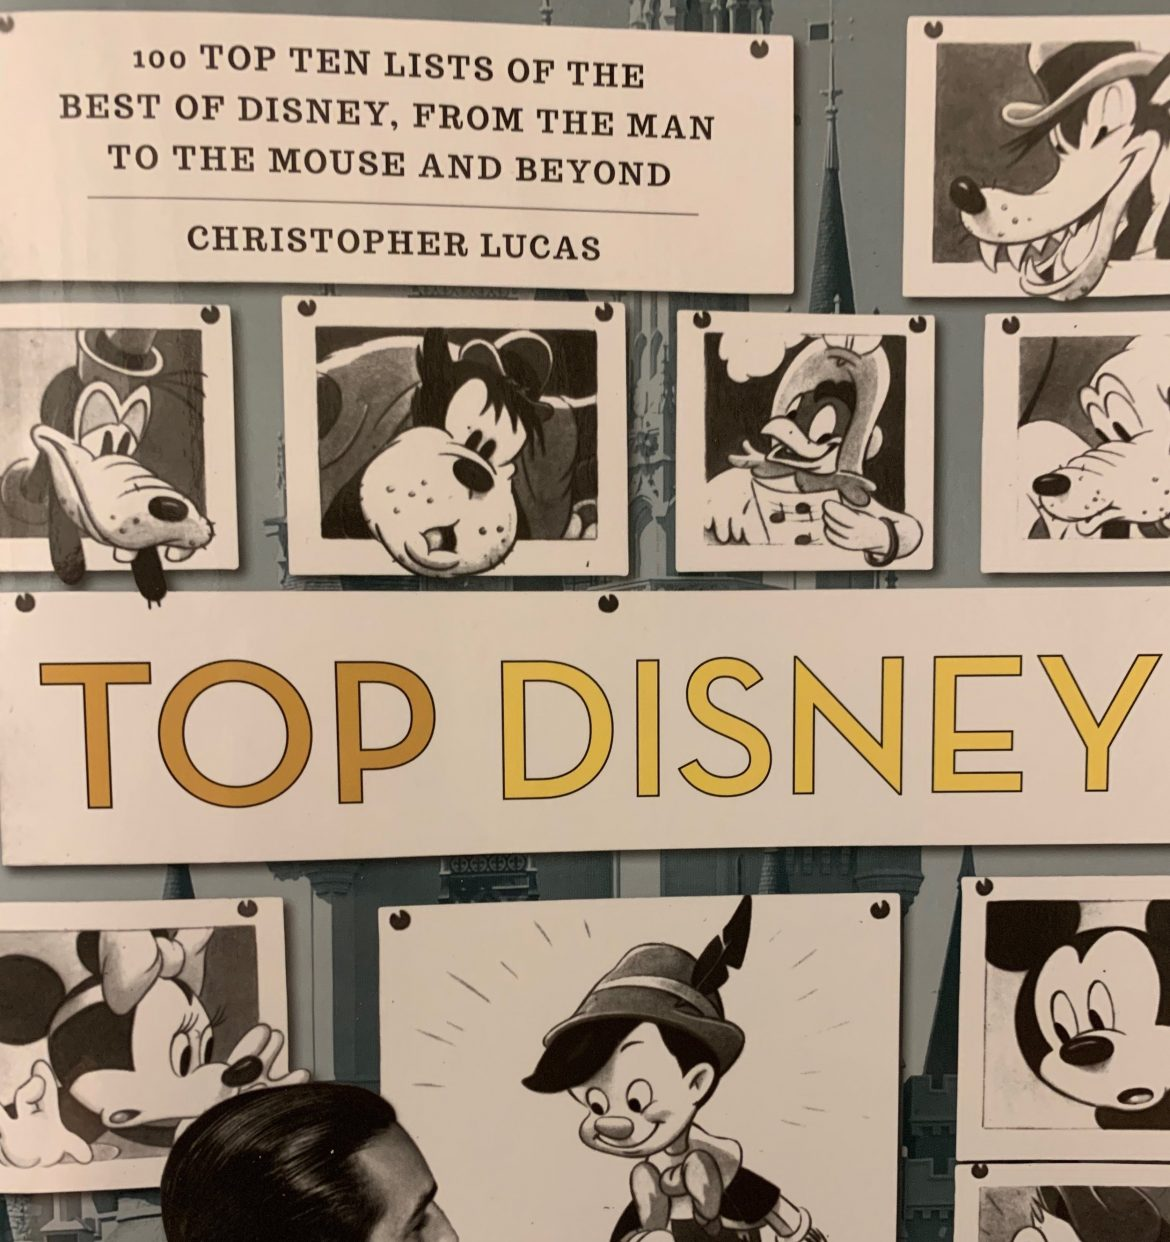 Top Disney by Christopher Lucas: A book review